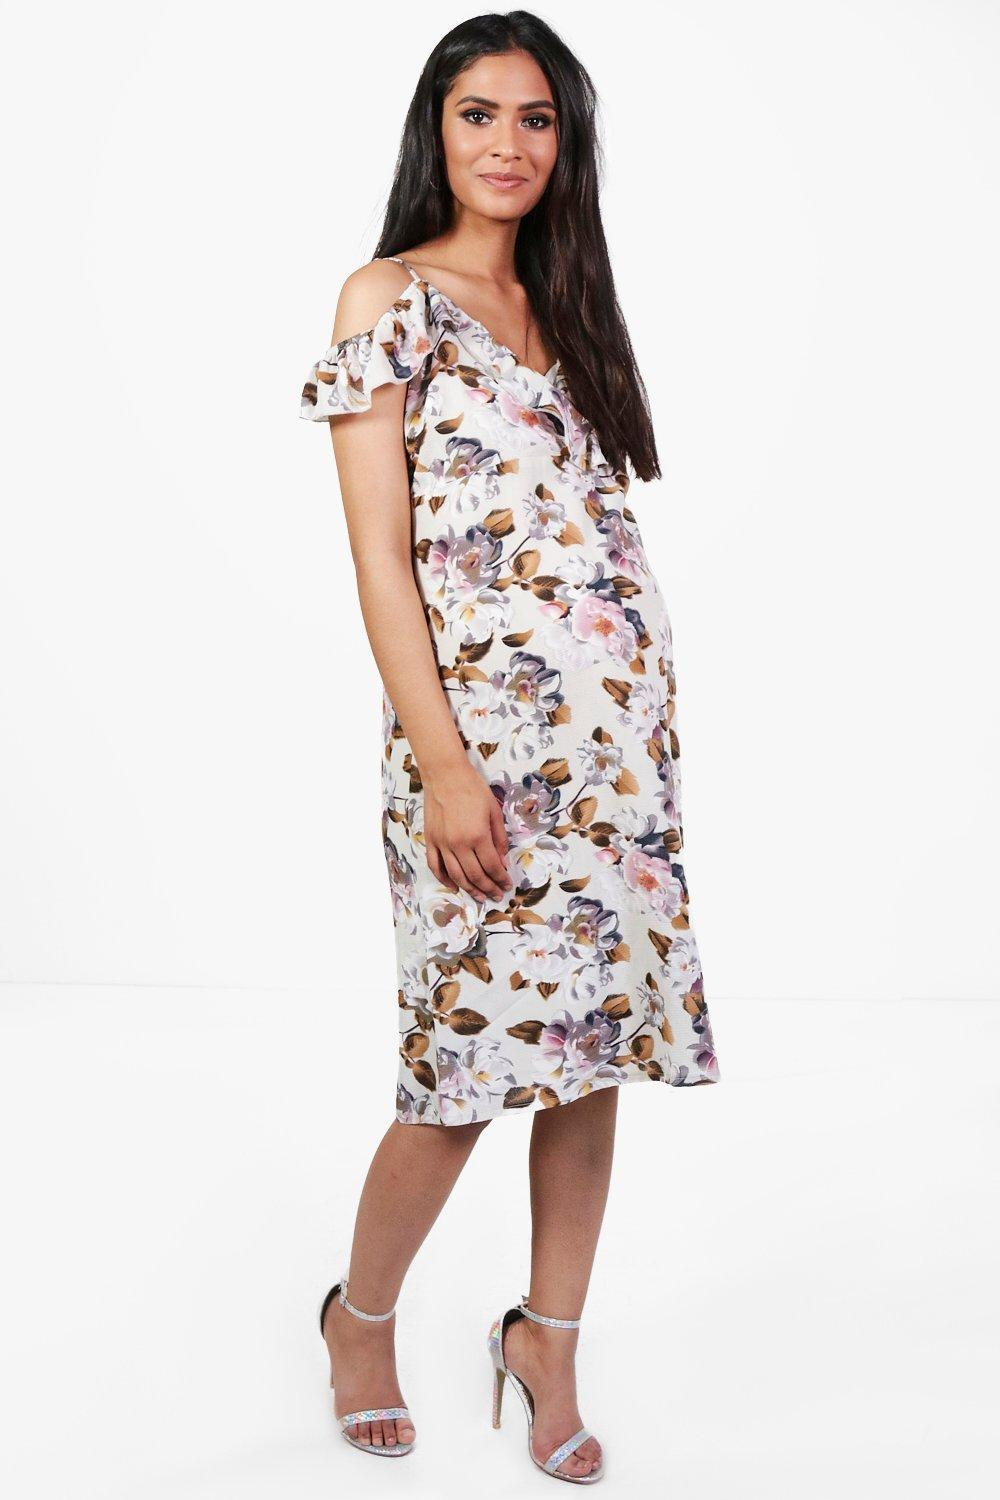 Patterned Dresses for Pregnant Women Inspired by Sandy Leah